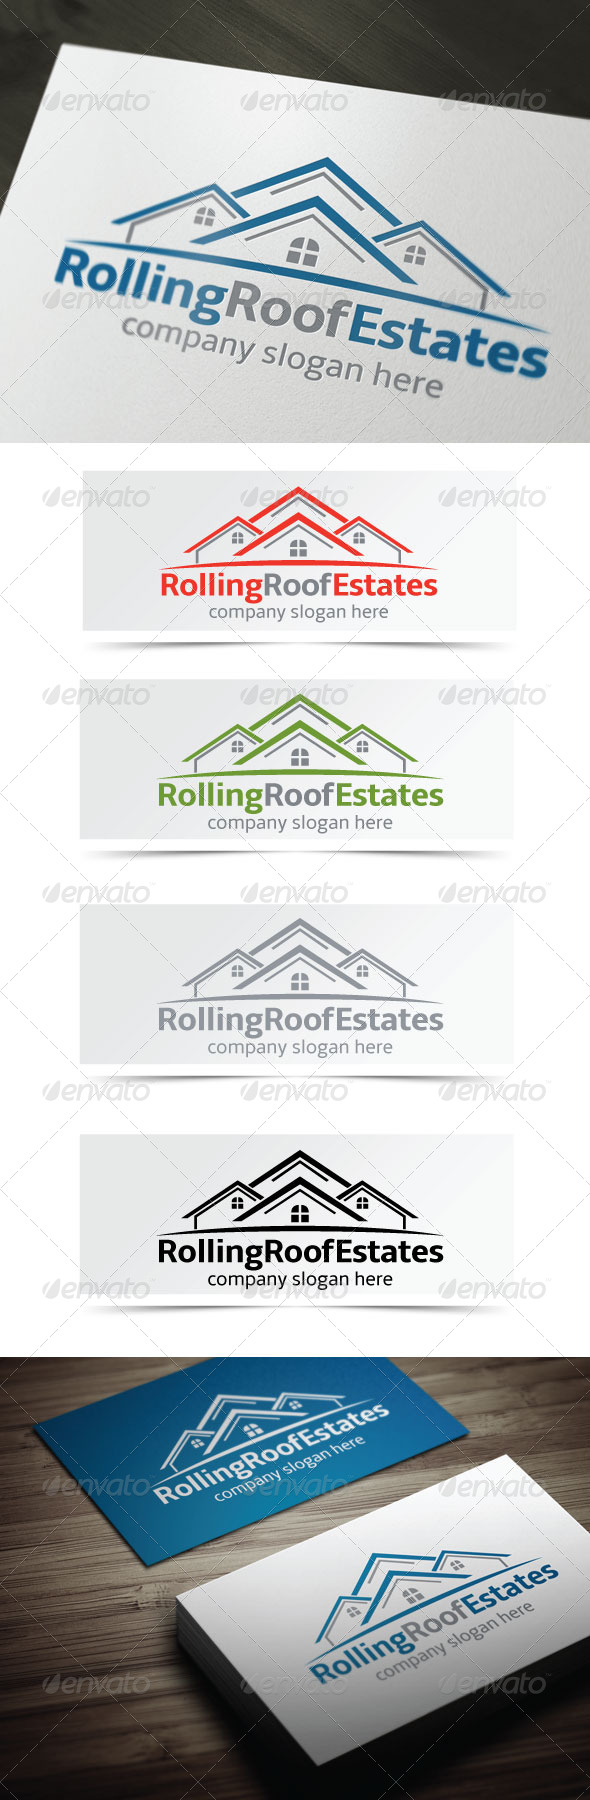 GraphicRiver Rolling Roof Estates 4177466